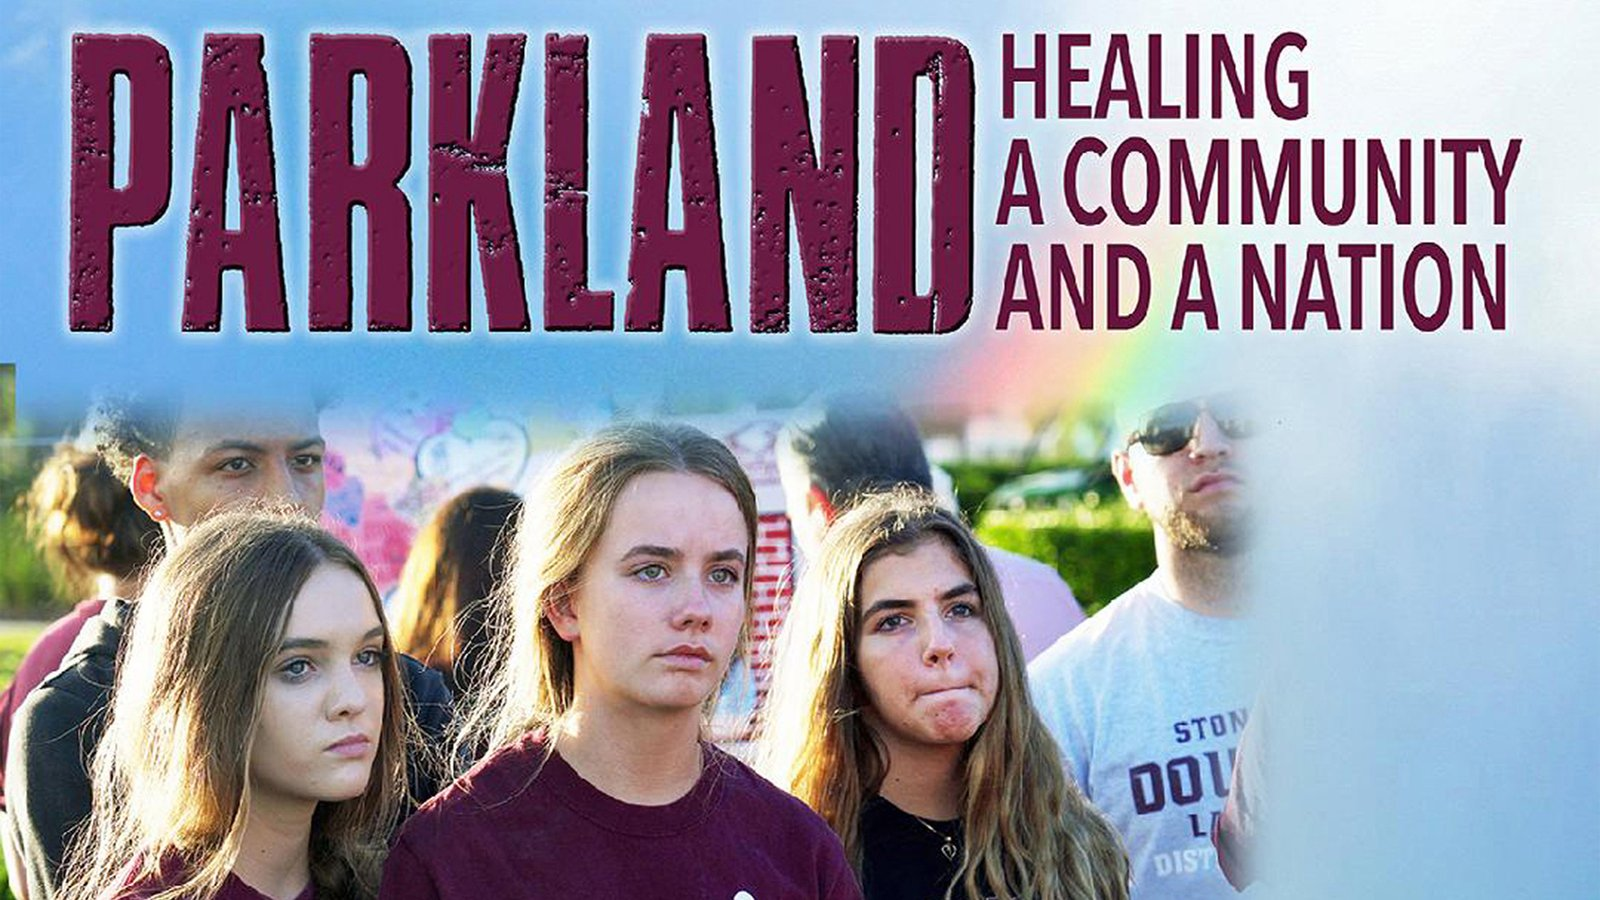 Parkland: Healing a Community and a Nation